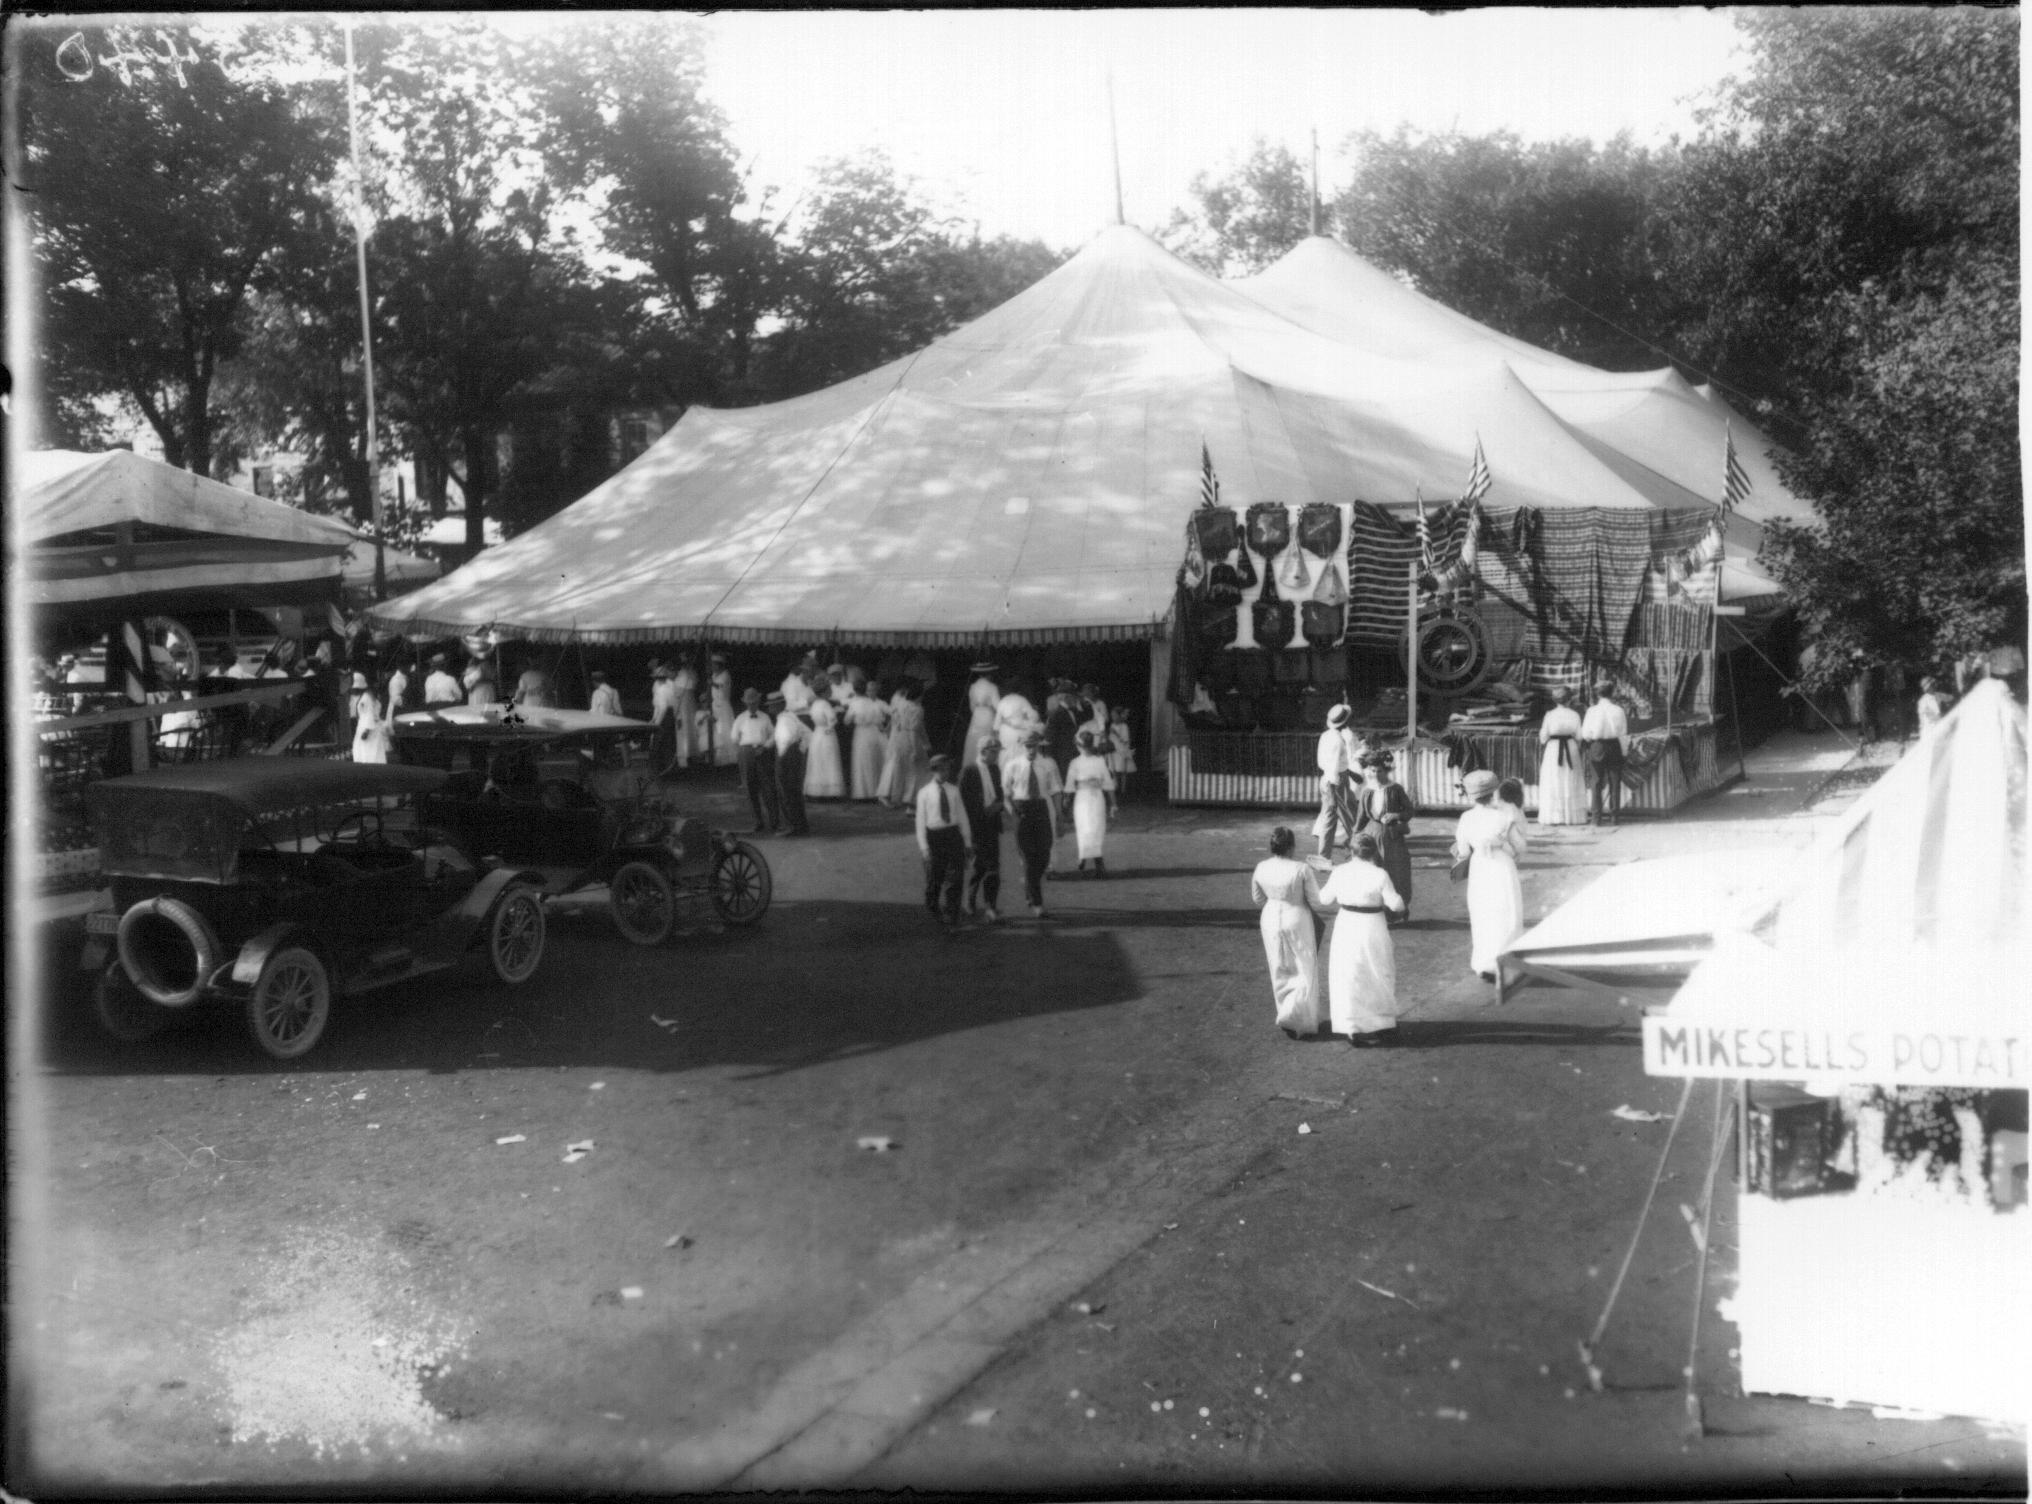 FileExterior of exhibit tent at Oxford Street Fair 1915 (3190754689).jpg & File:Exterior of exhibit tent at Oxford Street Fair 1915 ...